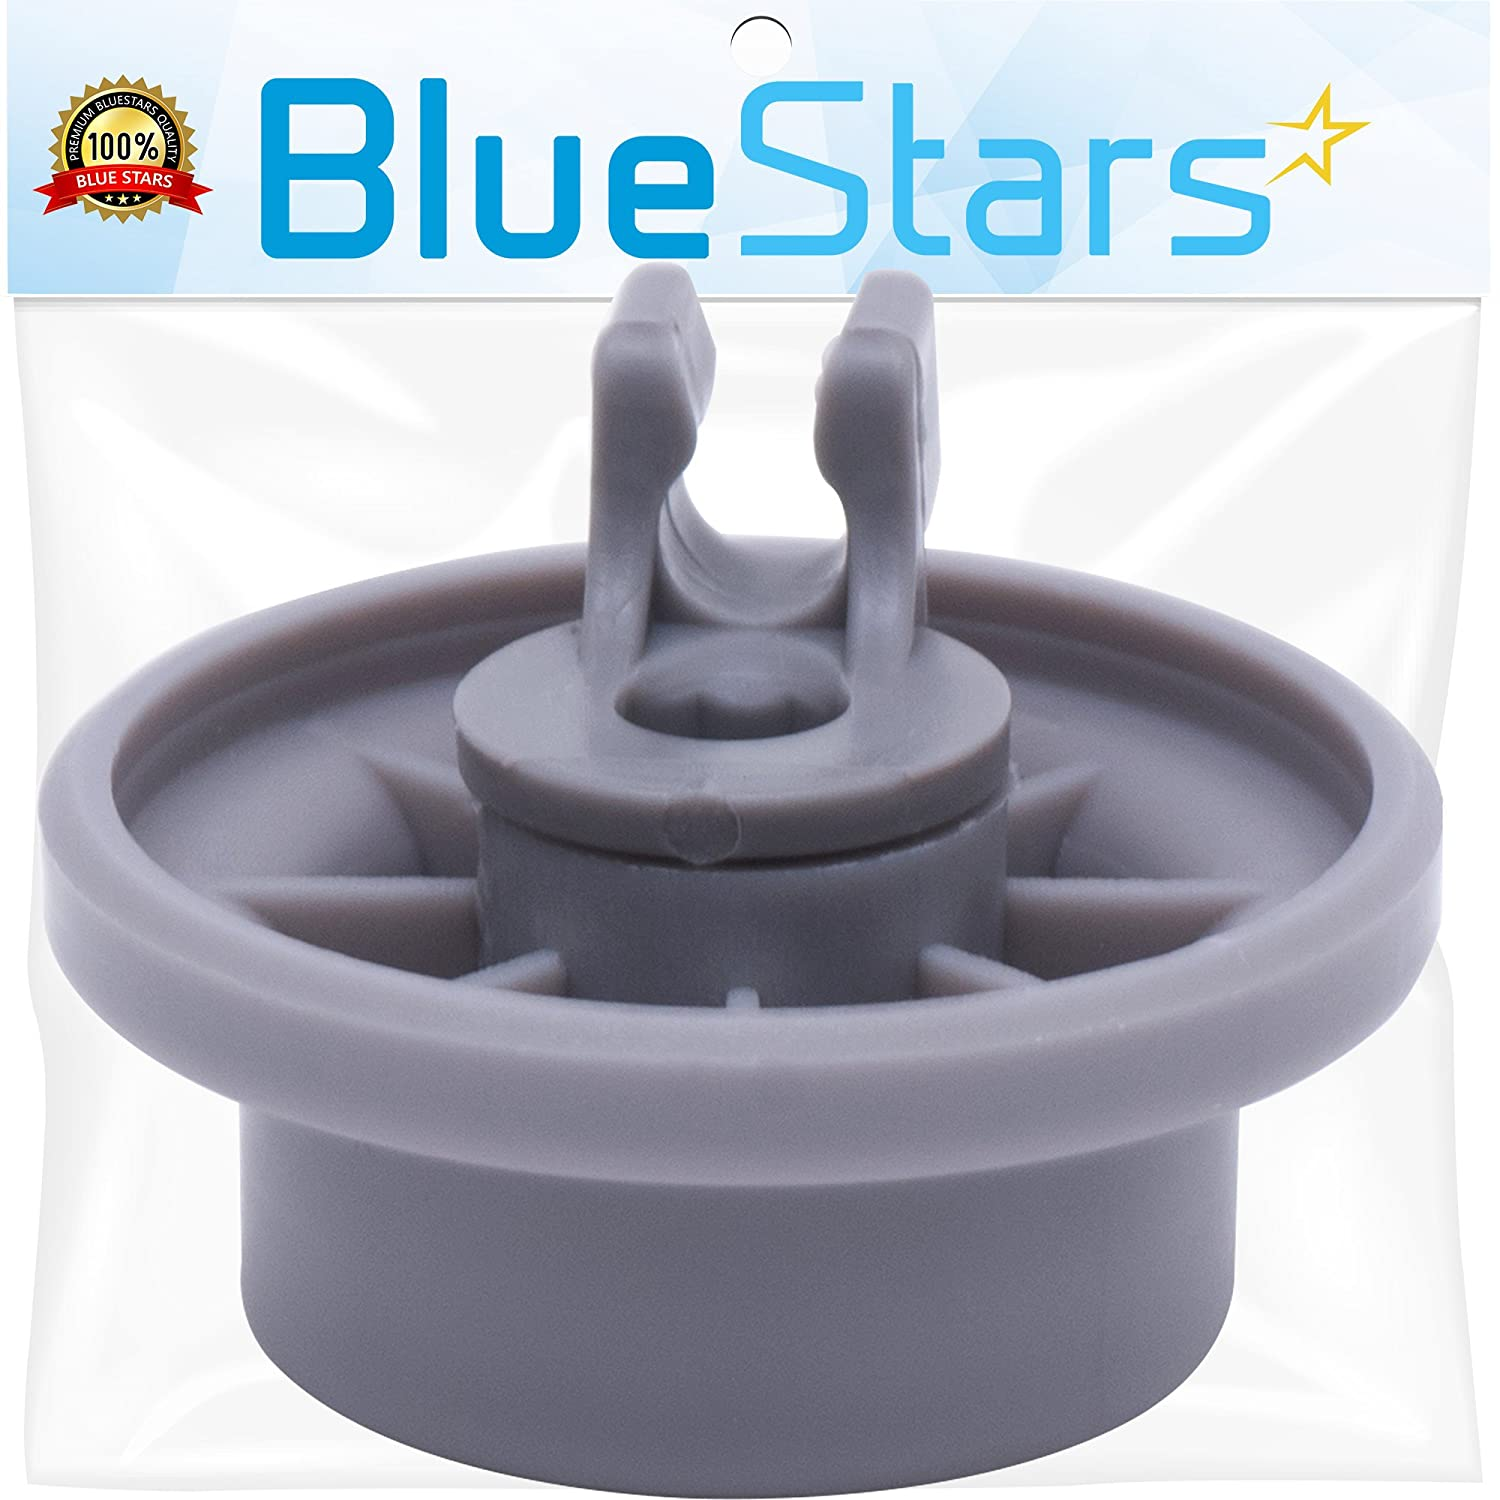 Ultra Durable 165314 Dishwasher Lower Rack Wheel Replacement Part by Blue Stars - Exact Fit for Bosch & Kenmore Dishwashers - Replaces 420198 423232 AP2802428